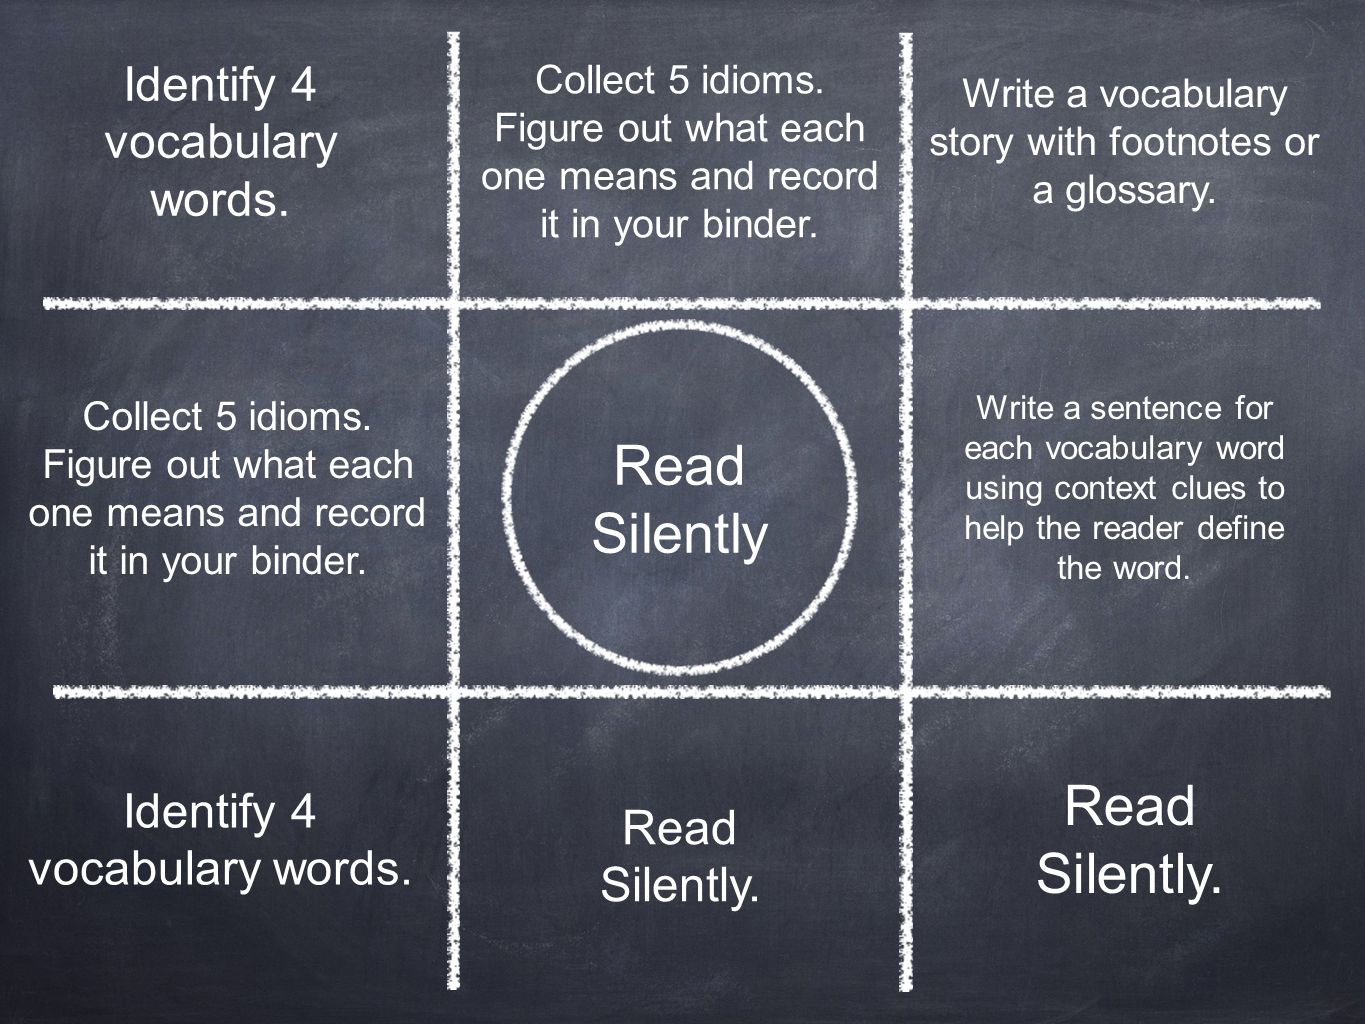 Read Silently Read Silently. Identify 4 vocabulary words.